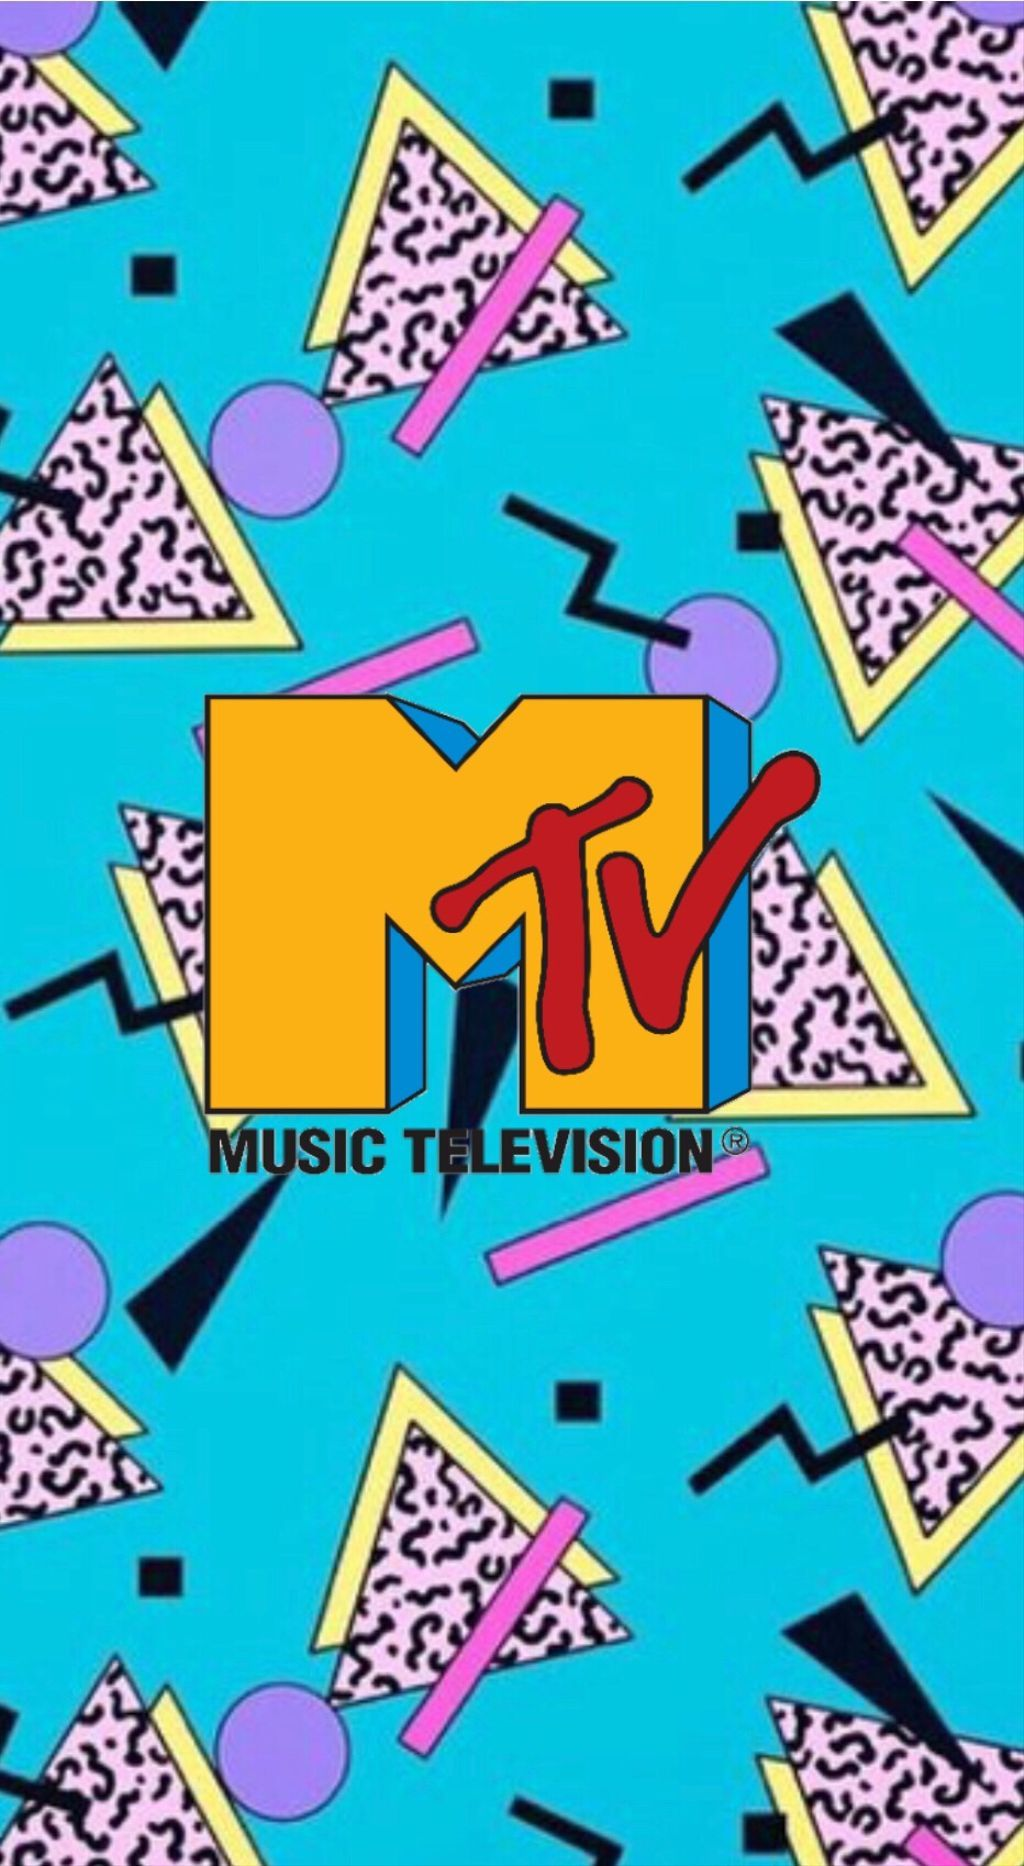 mtvmusic music mtv 80s aesthetic aesthetics tumblr stic 80s 1024x1866